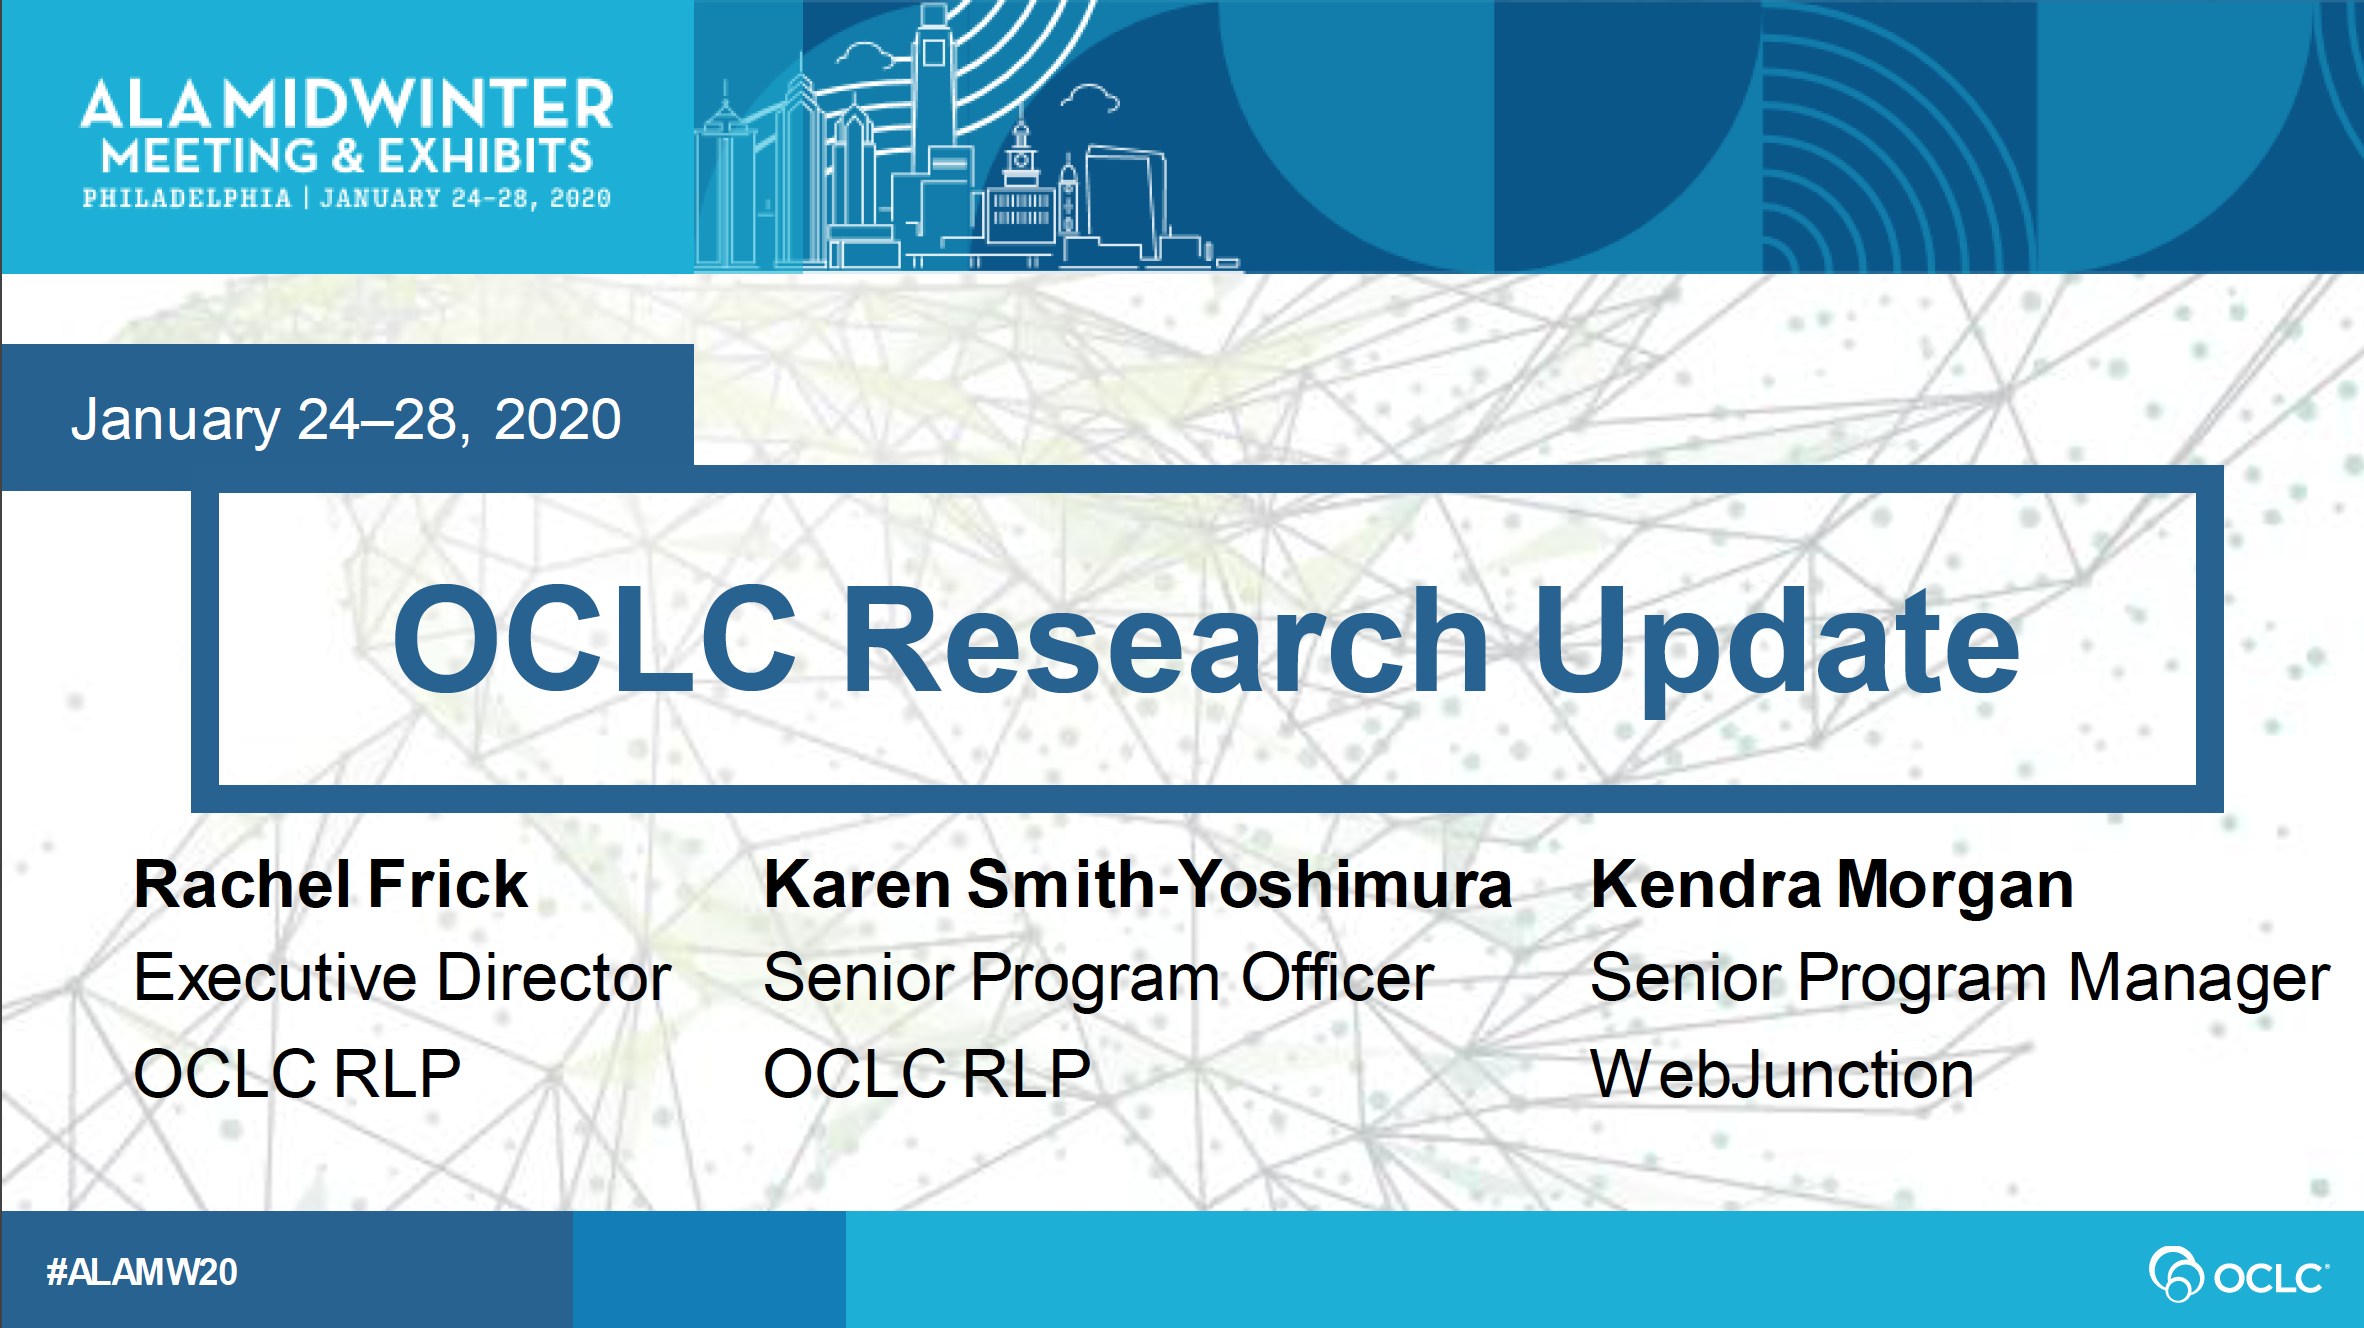 OCLC Research Update